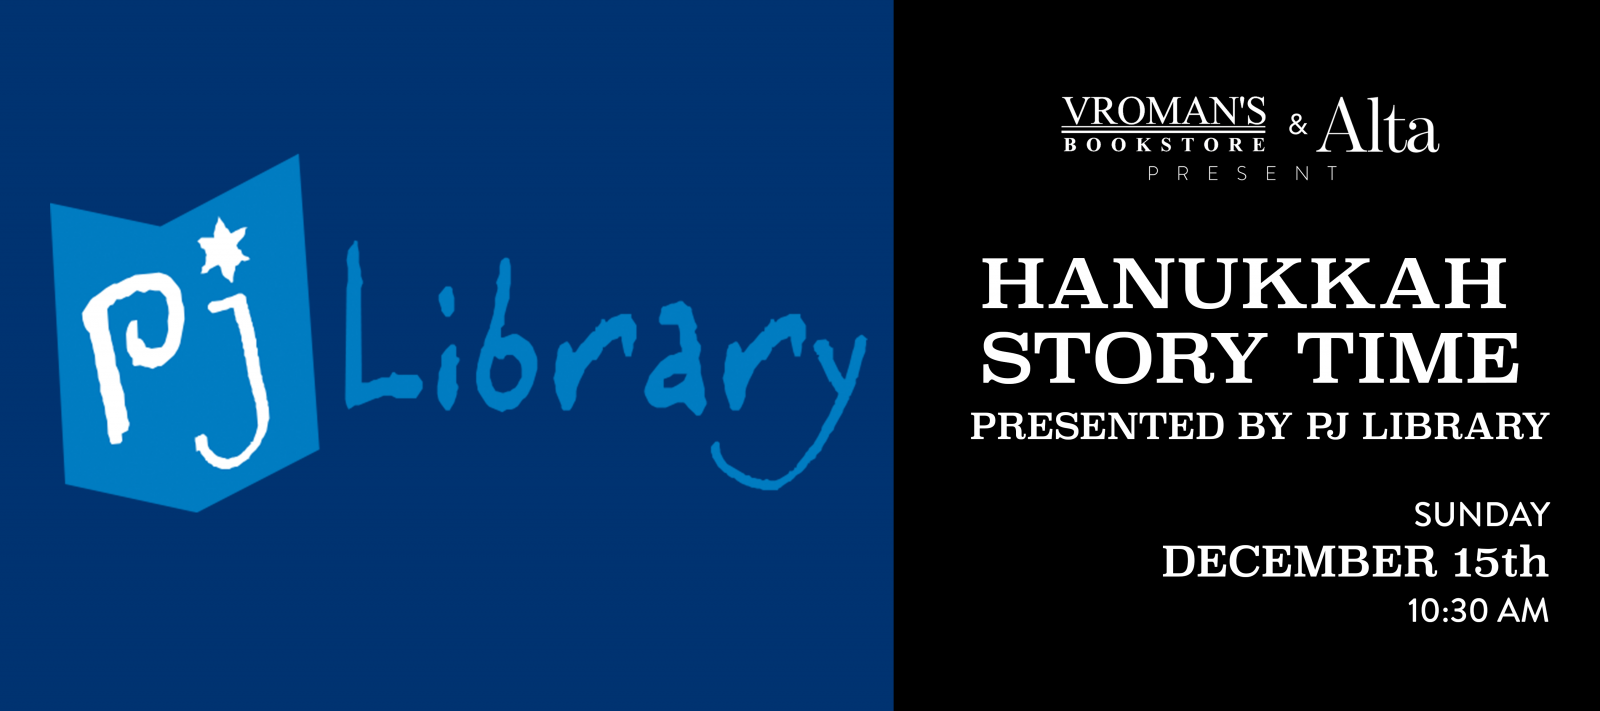 Hanukkah Story Time presented by PJ Library on Sunday, December 15 at 10:30am